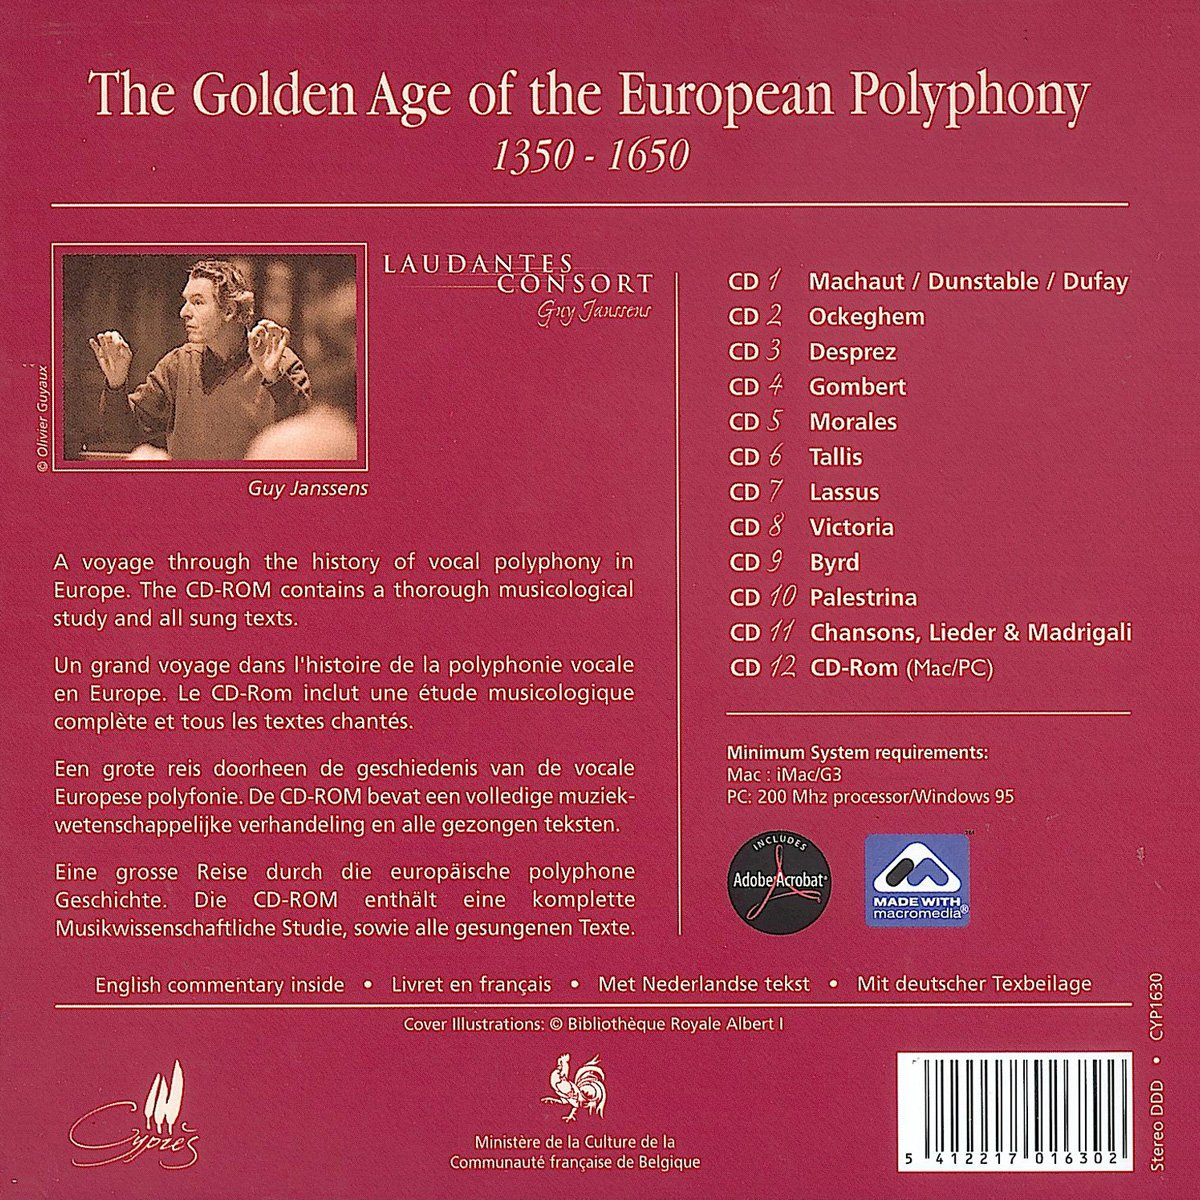 The Golden Age of the European Polyphony, 1350-1650